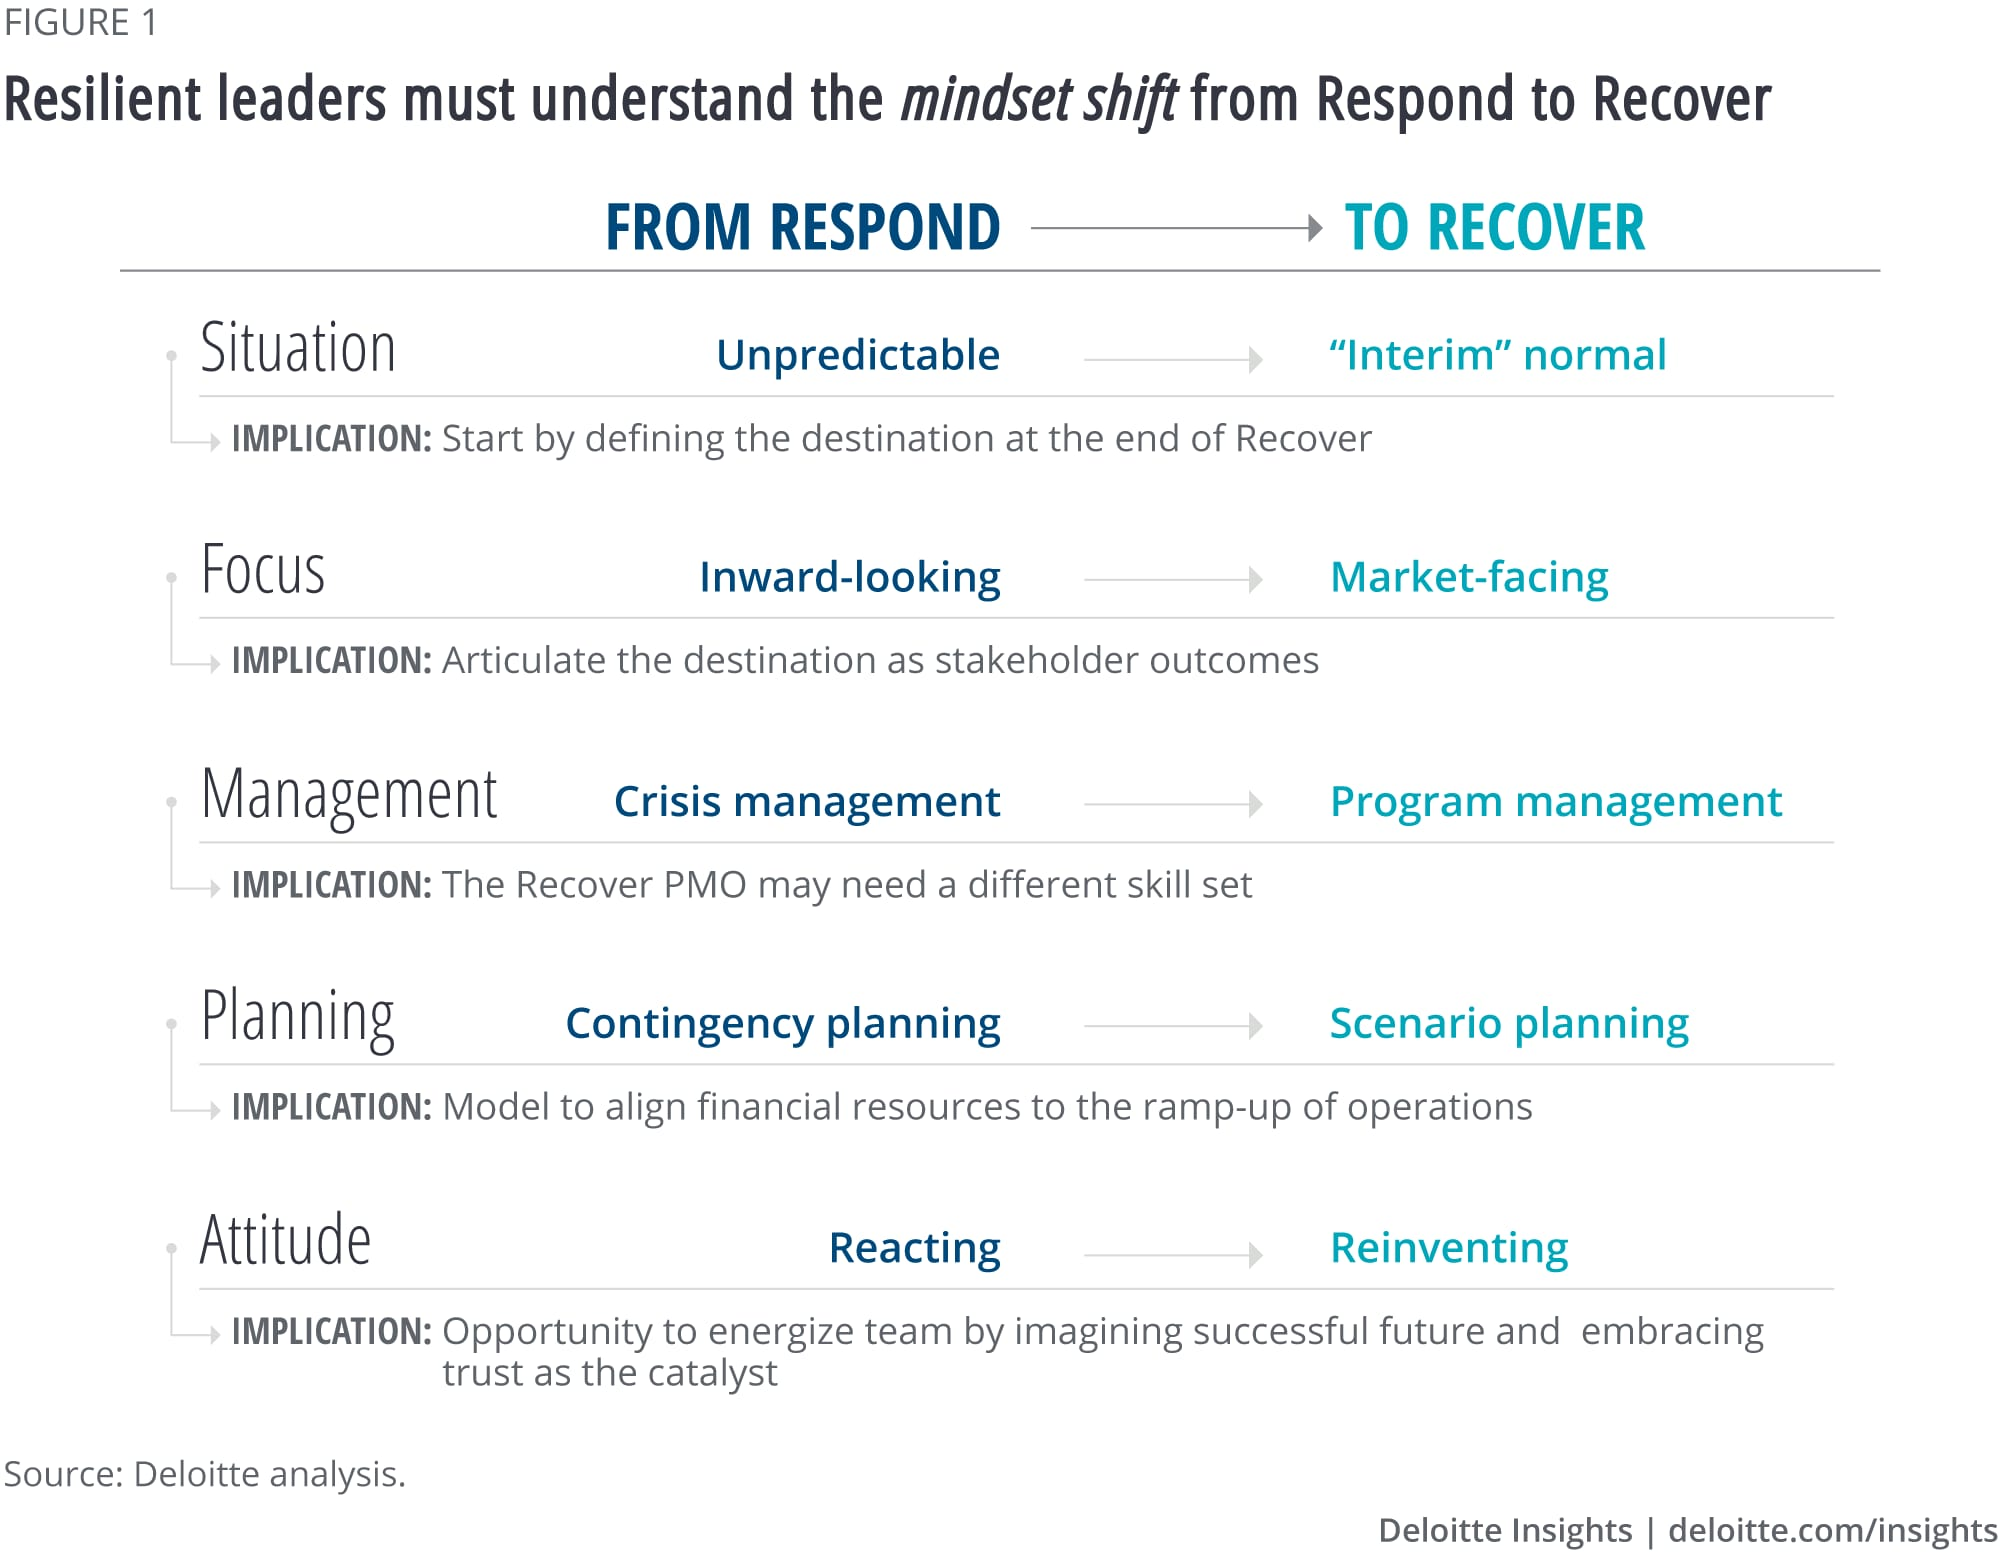 Resilient leaders must understand the mindset shift from Respond to Recover